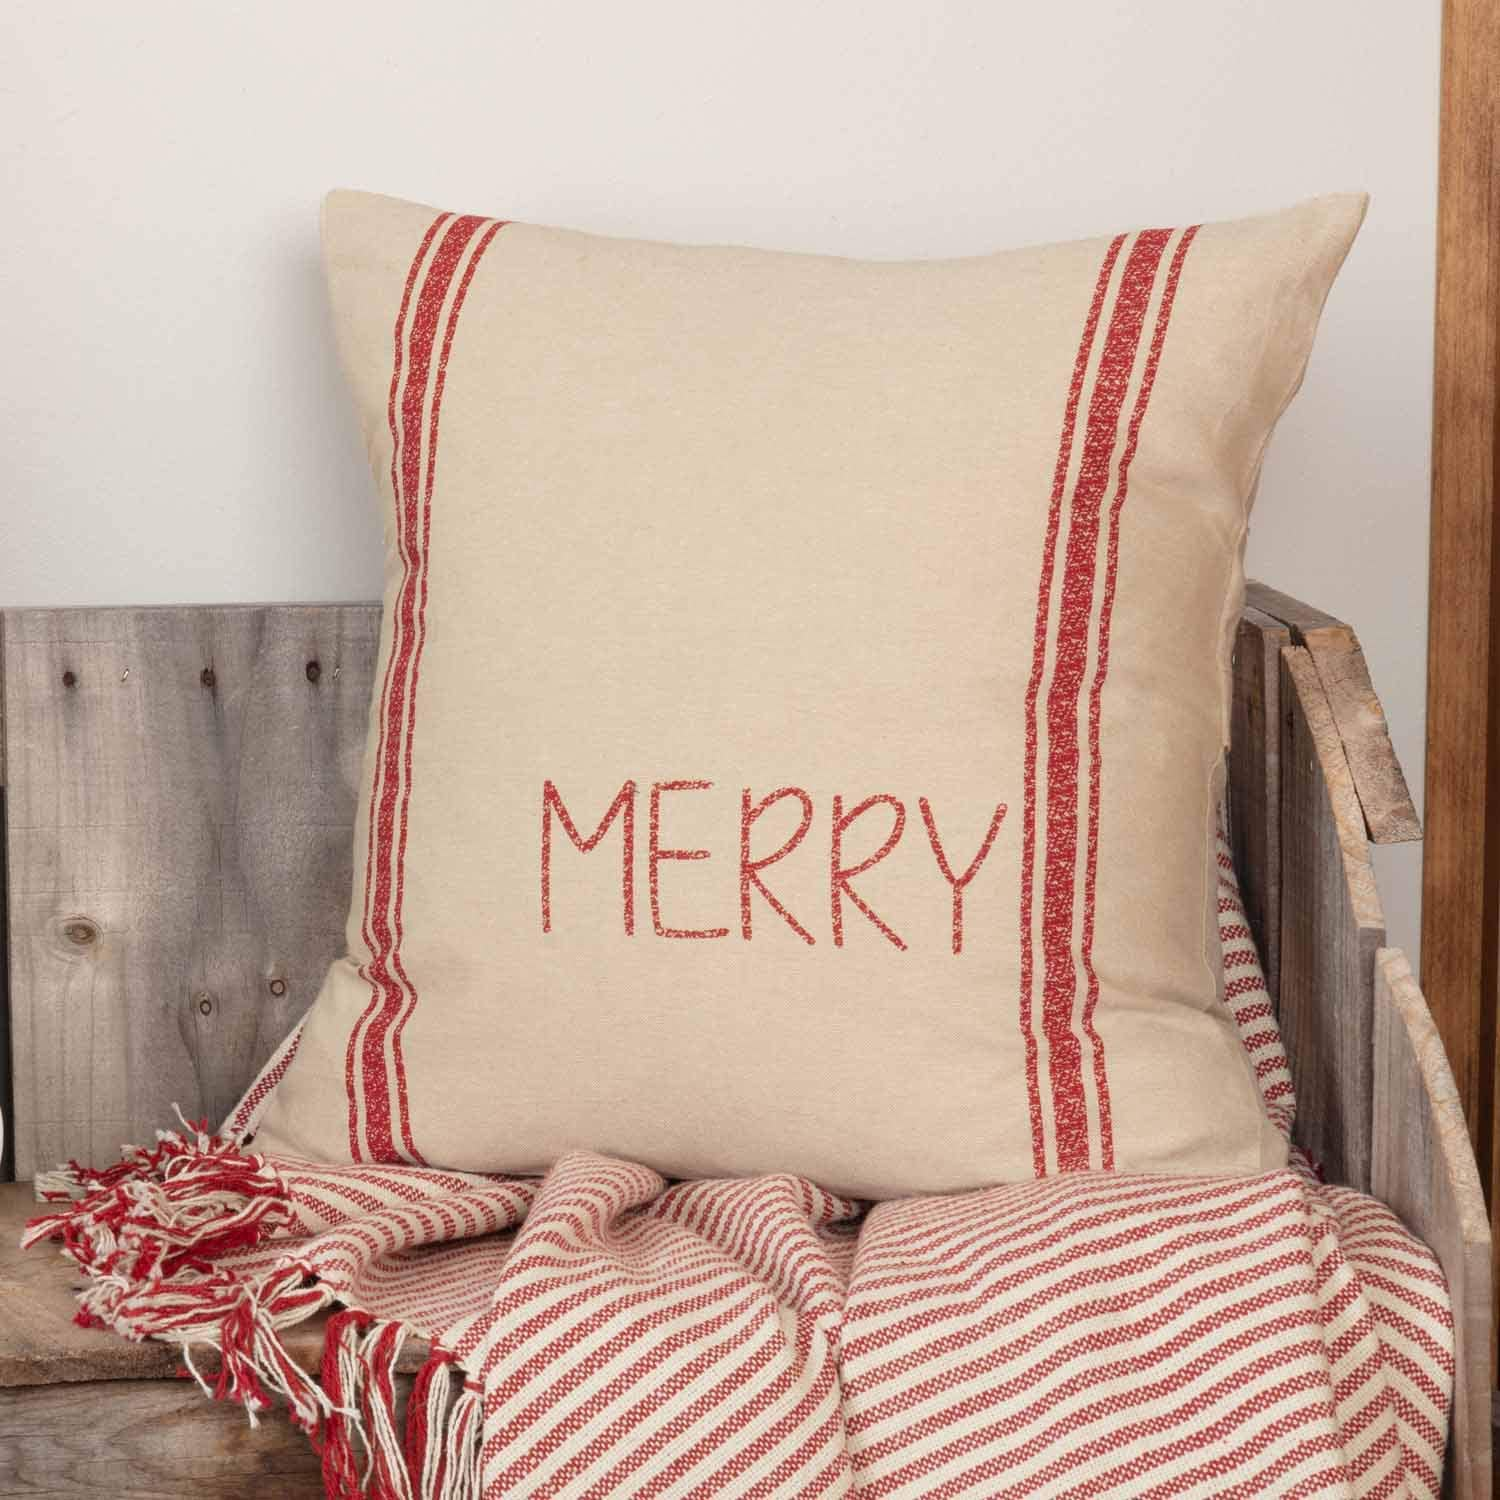 """Piper Classics Merry Printed Grain Sack Pillow Cover, 18"""" x 18"""", Farmhouse Style Décor, Christmas or Holiday Decor, Red on Beige Word Pillow"""